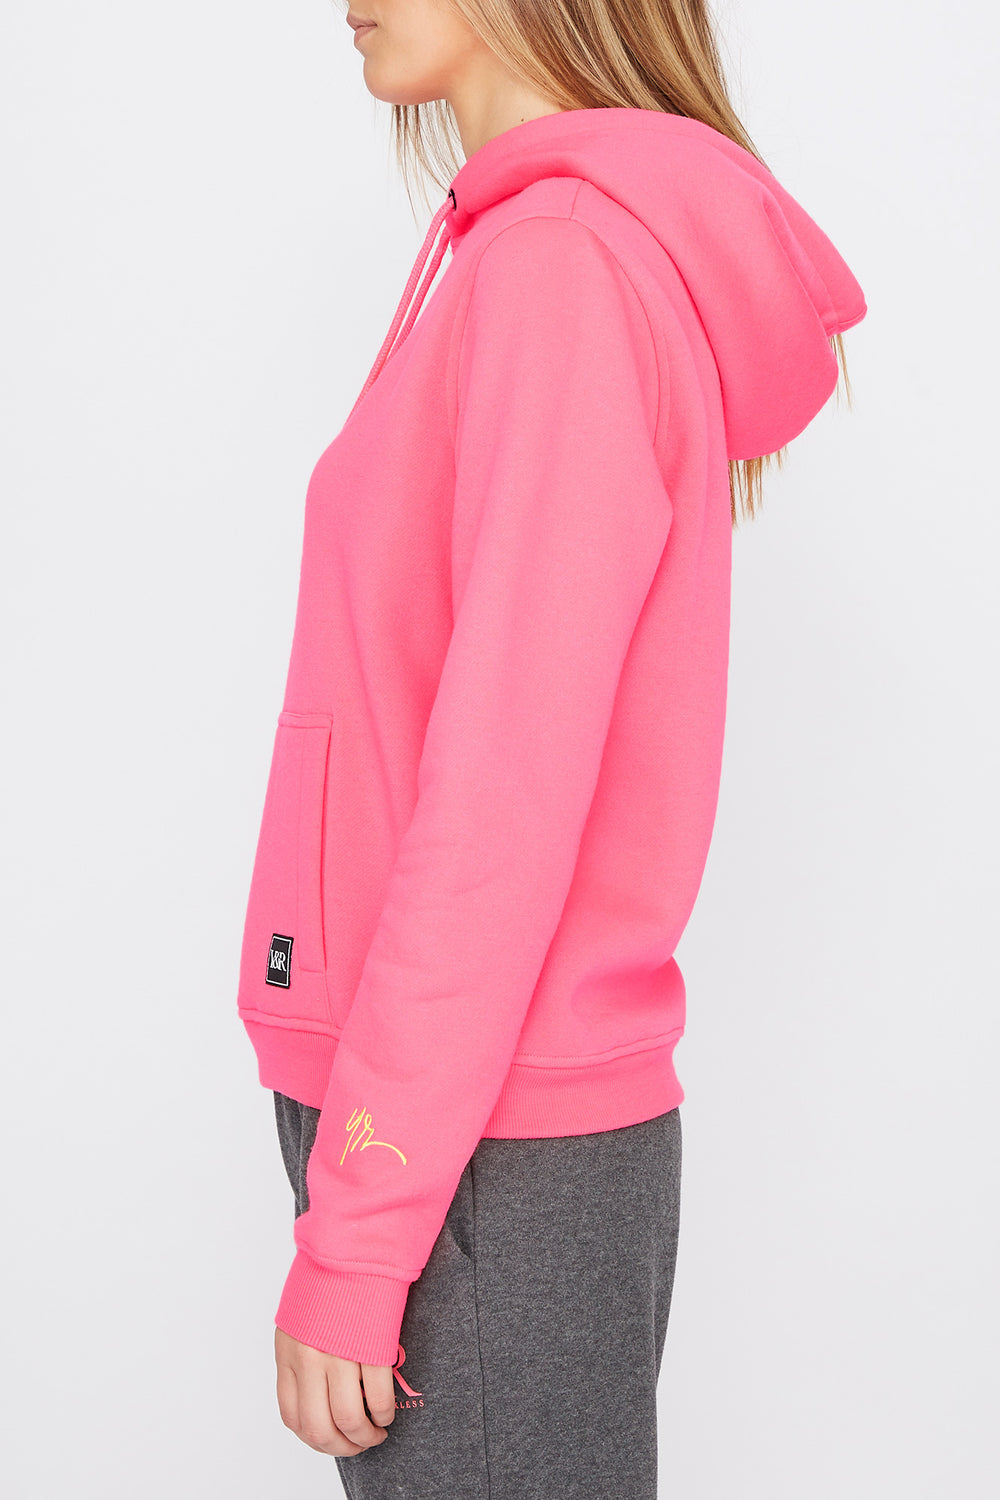 Haut À Capuchon Logo Patch Fluo Young & Reckless Femme Magenta